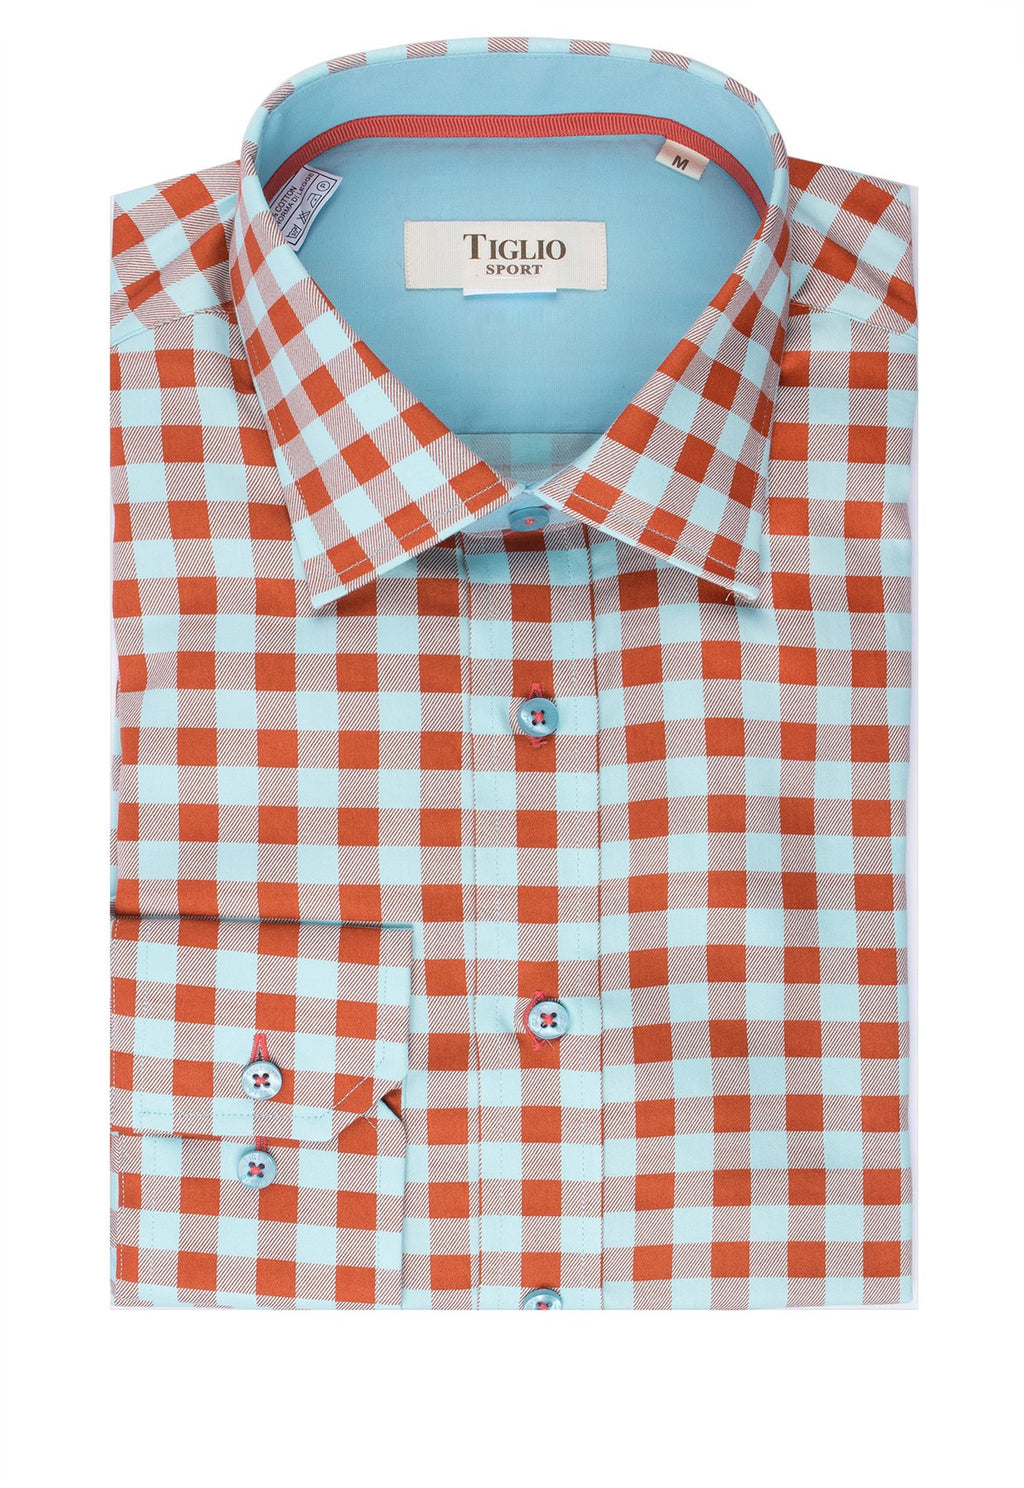 Tiglio Sport Mint Green and Orange Check Modern Fit Sport Shirt V12242